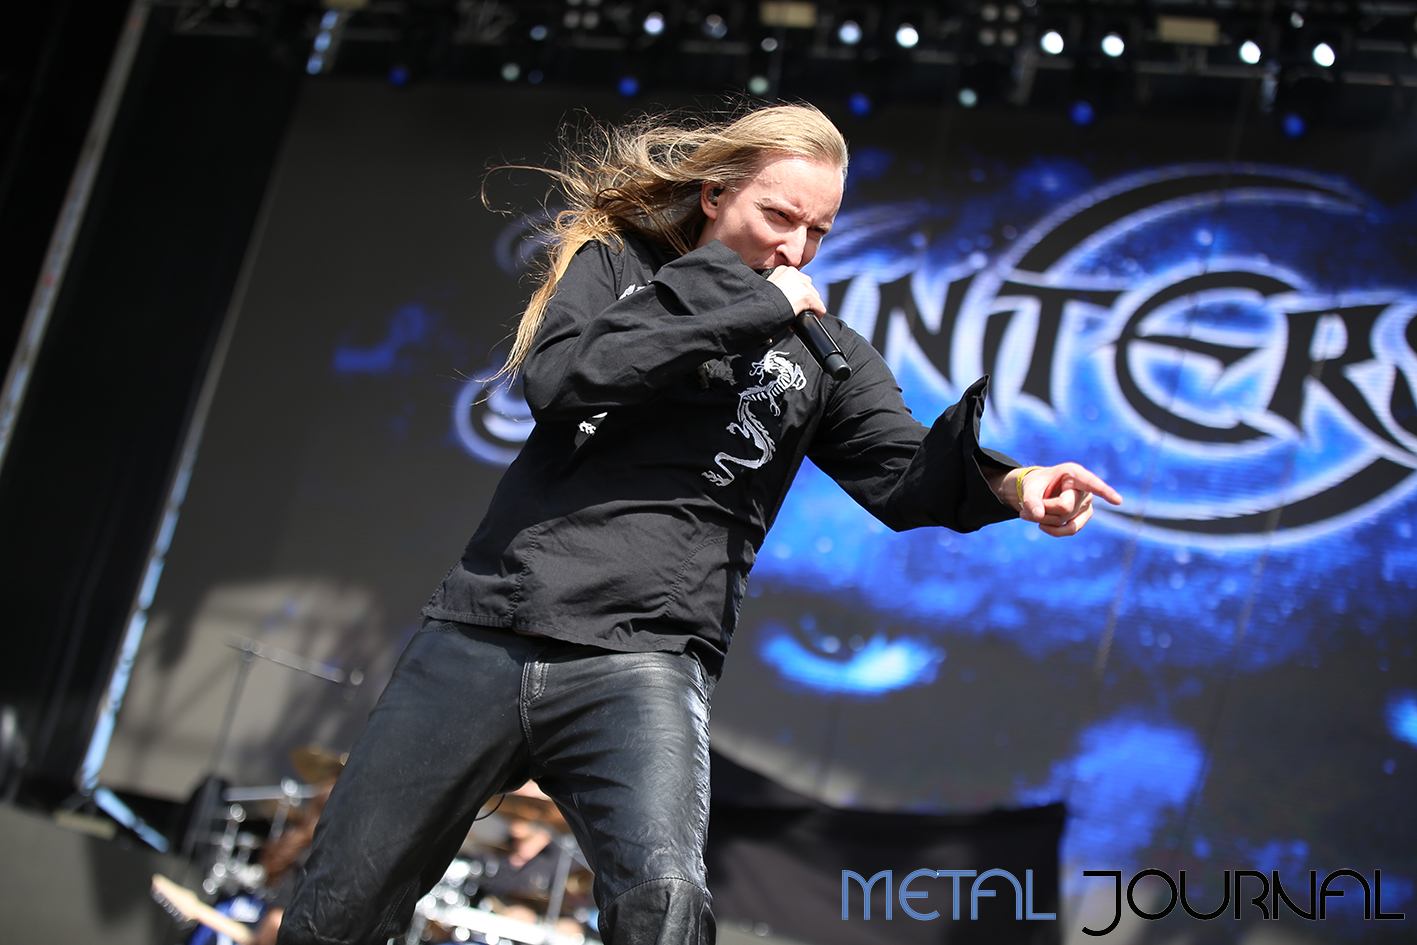 wintersun metal journal rock the coast 2019 pic 4